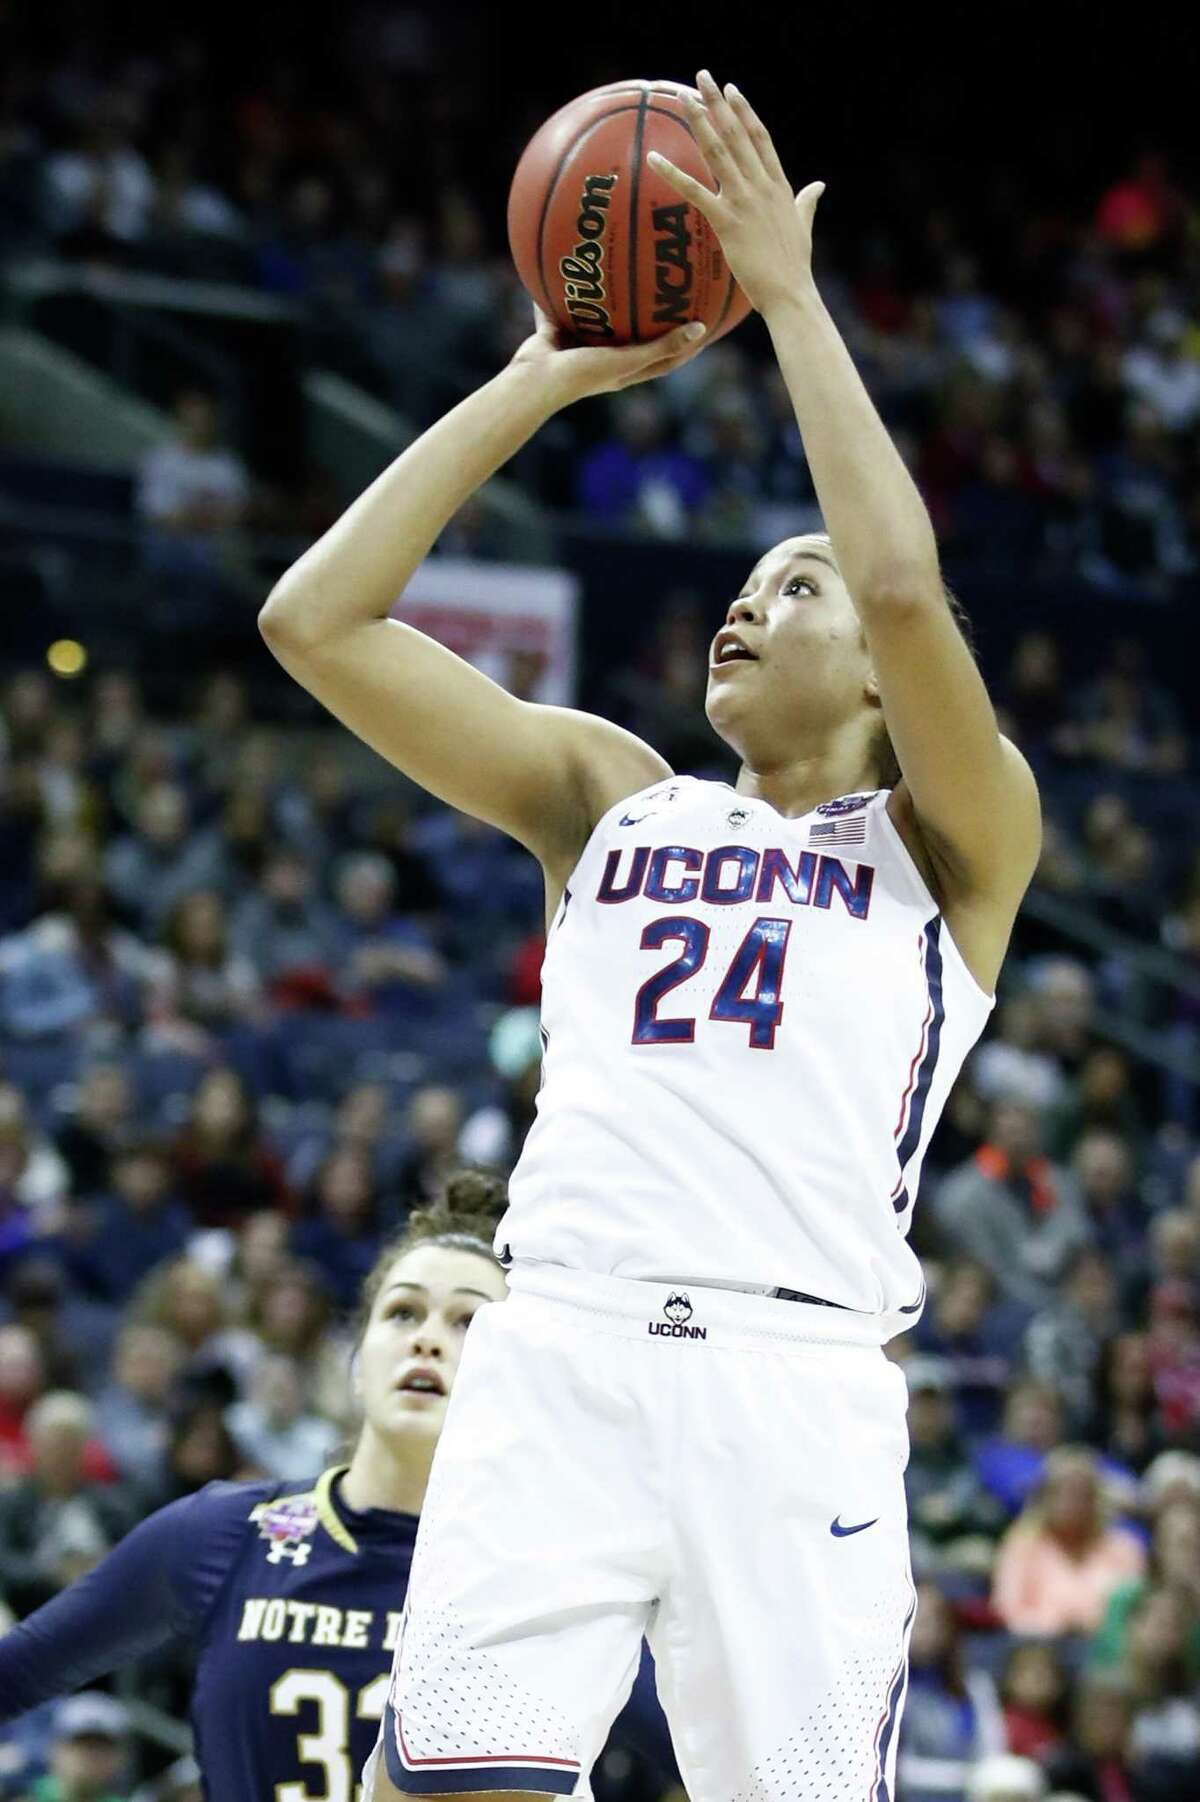 UConn's Napheesa Collier has been invited to the U.S. women's senior national team training camp in Seattle from April 24-26.